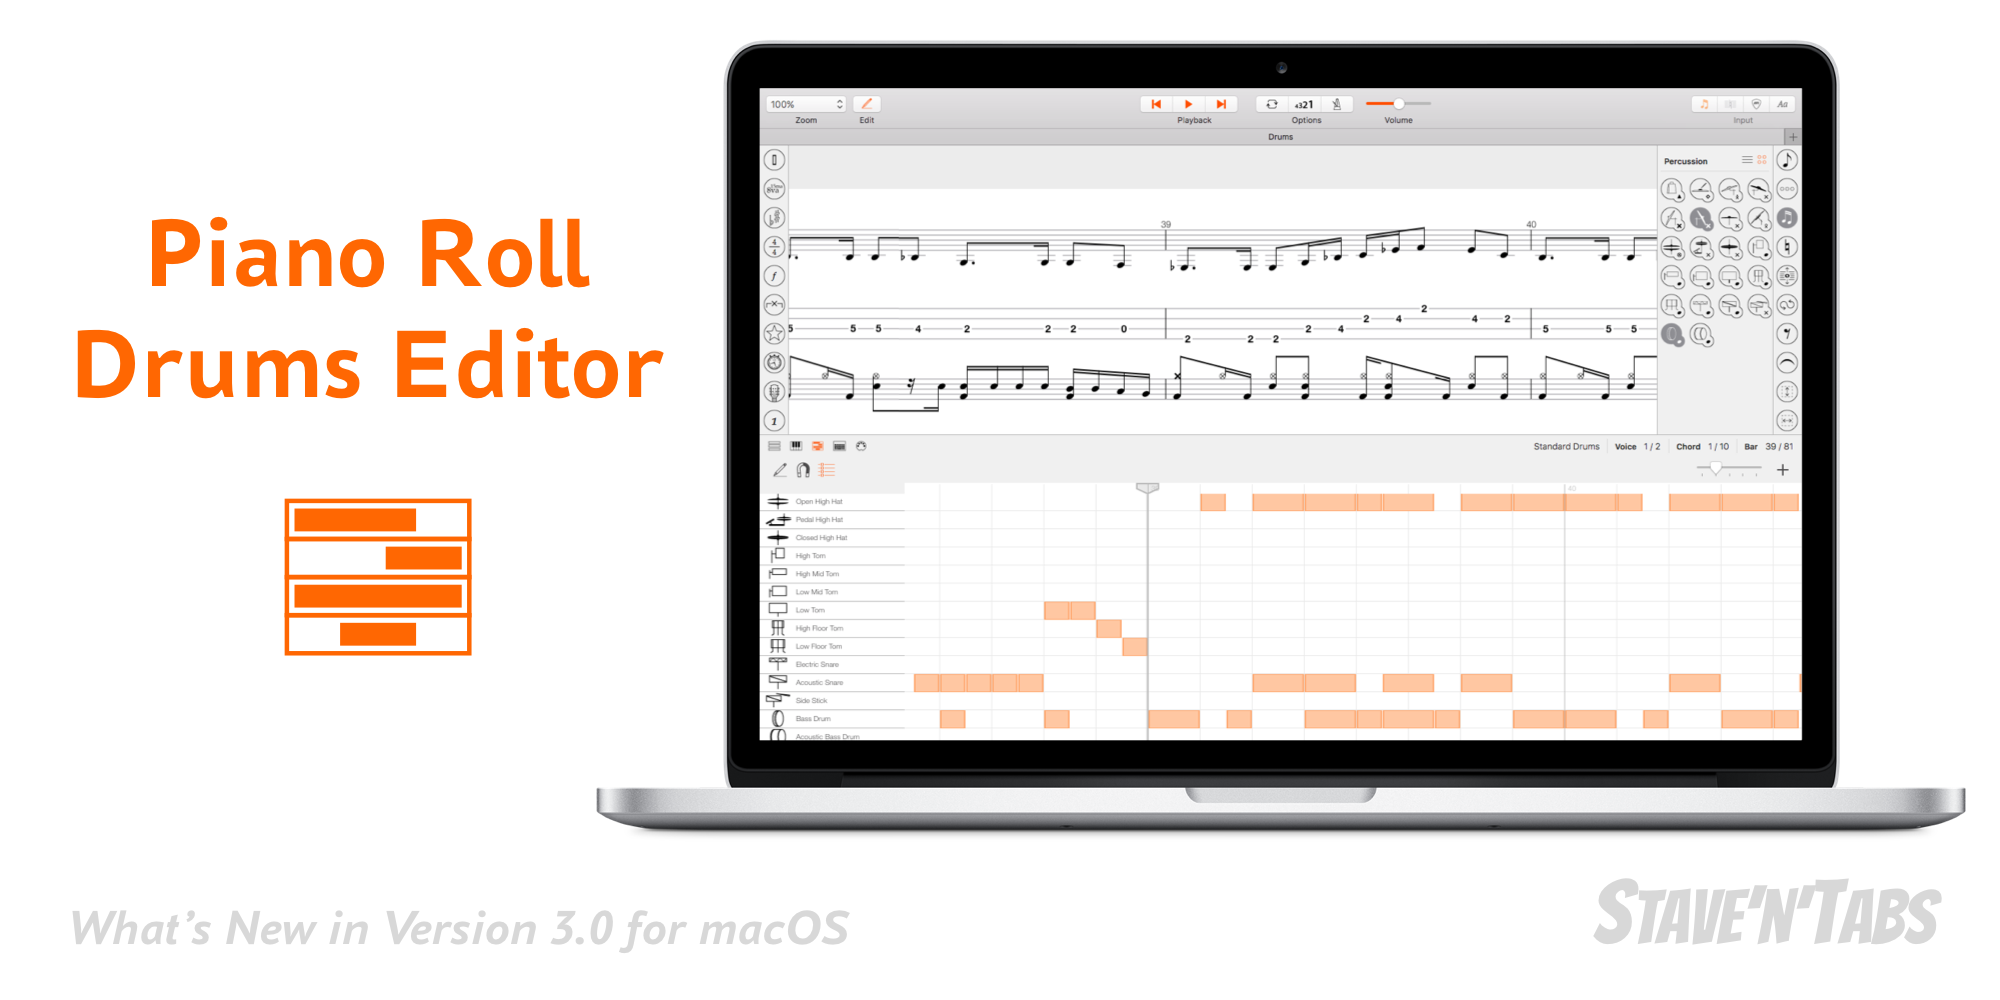 Stave'n'Tabs macOS 3.0: Sophisticated Piano Roll and Drums Editor